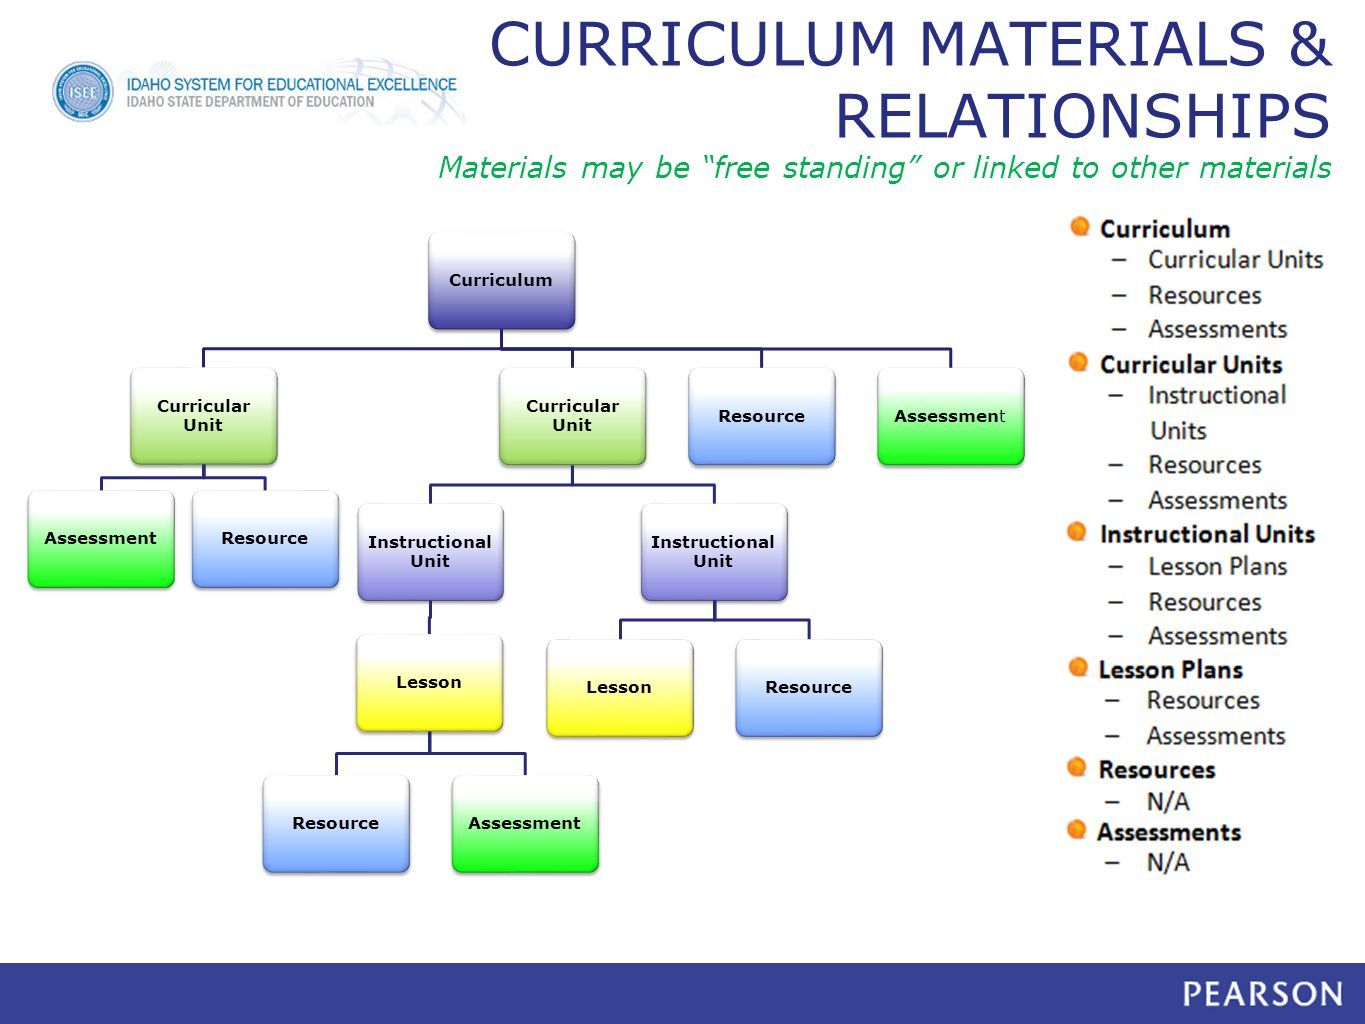 CURRICULUM MATERIALS & RELATIONSHIPS Materials may be free standing or linked to other materials Curriculum Curricular Unit AssessmentResource Curricular Unit Instructional Unit LessonResourceAssessment Instructional Unit LessonResource Assessment